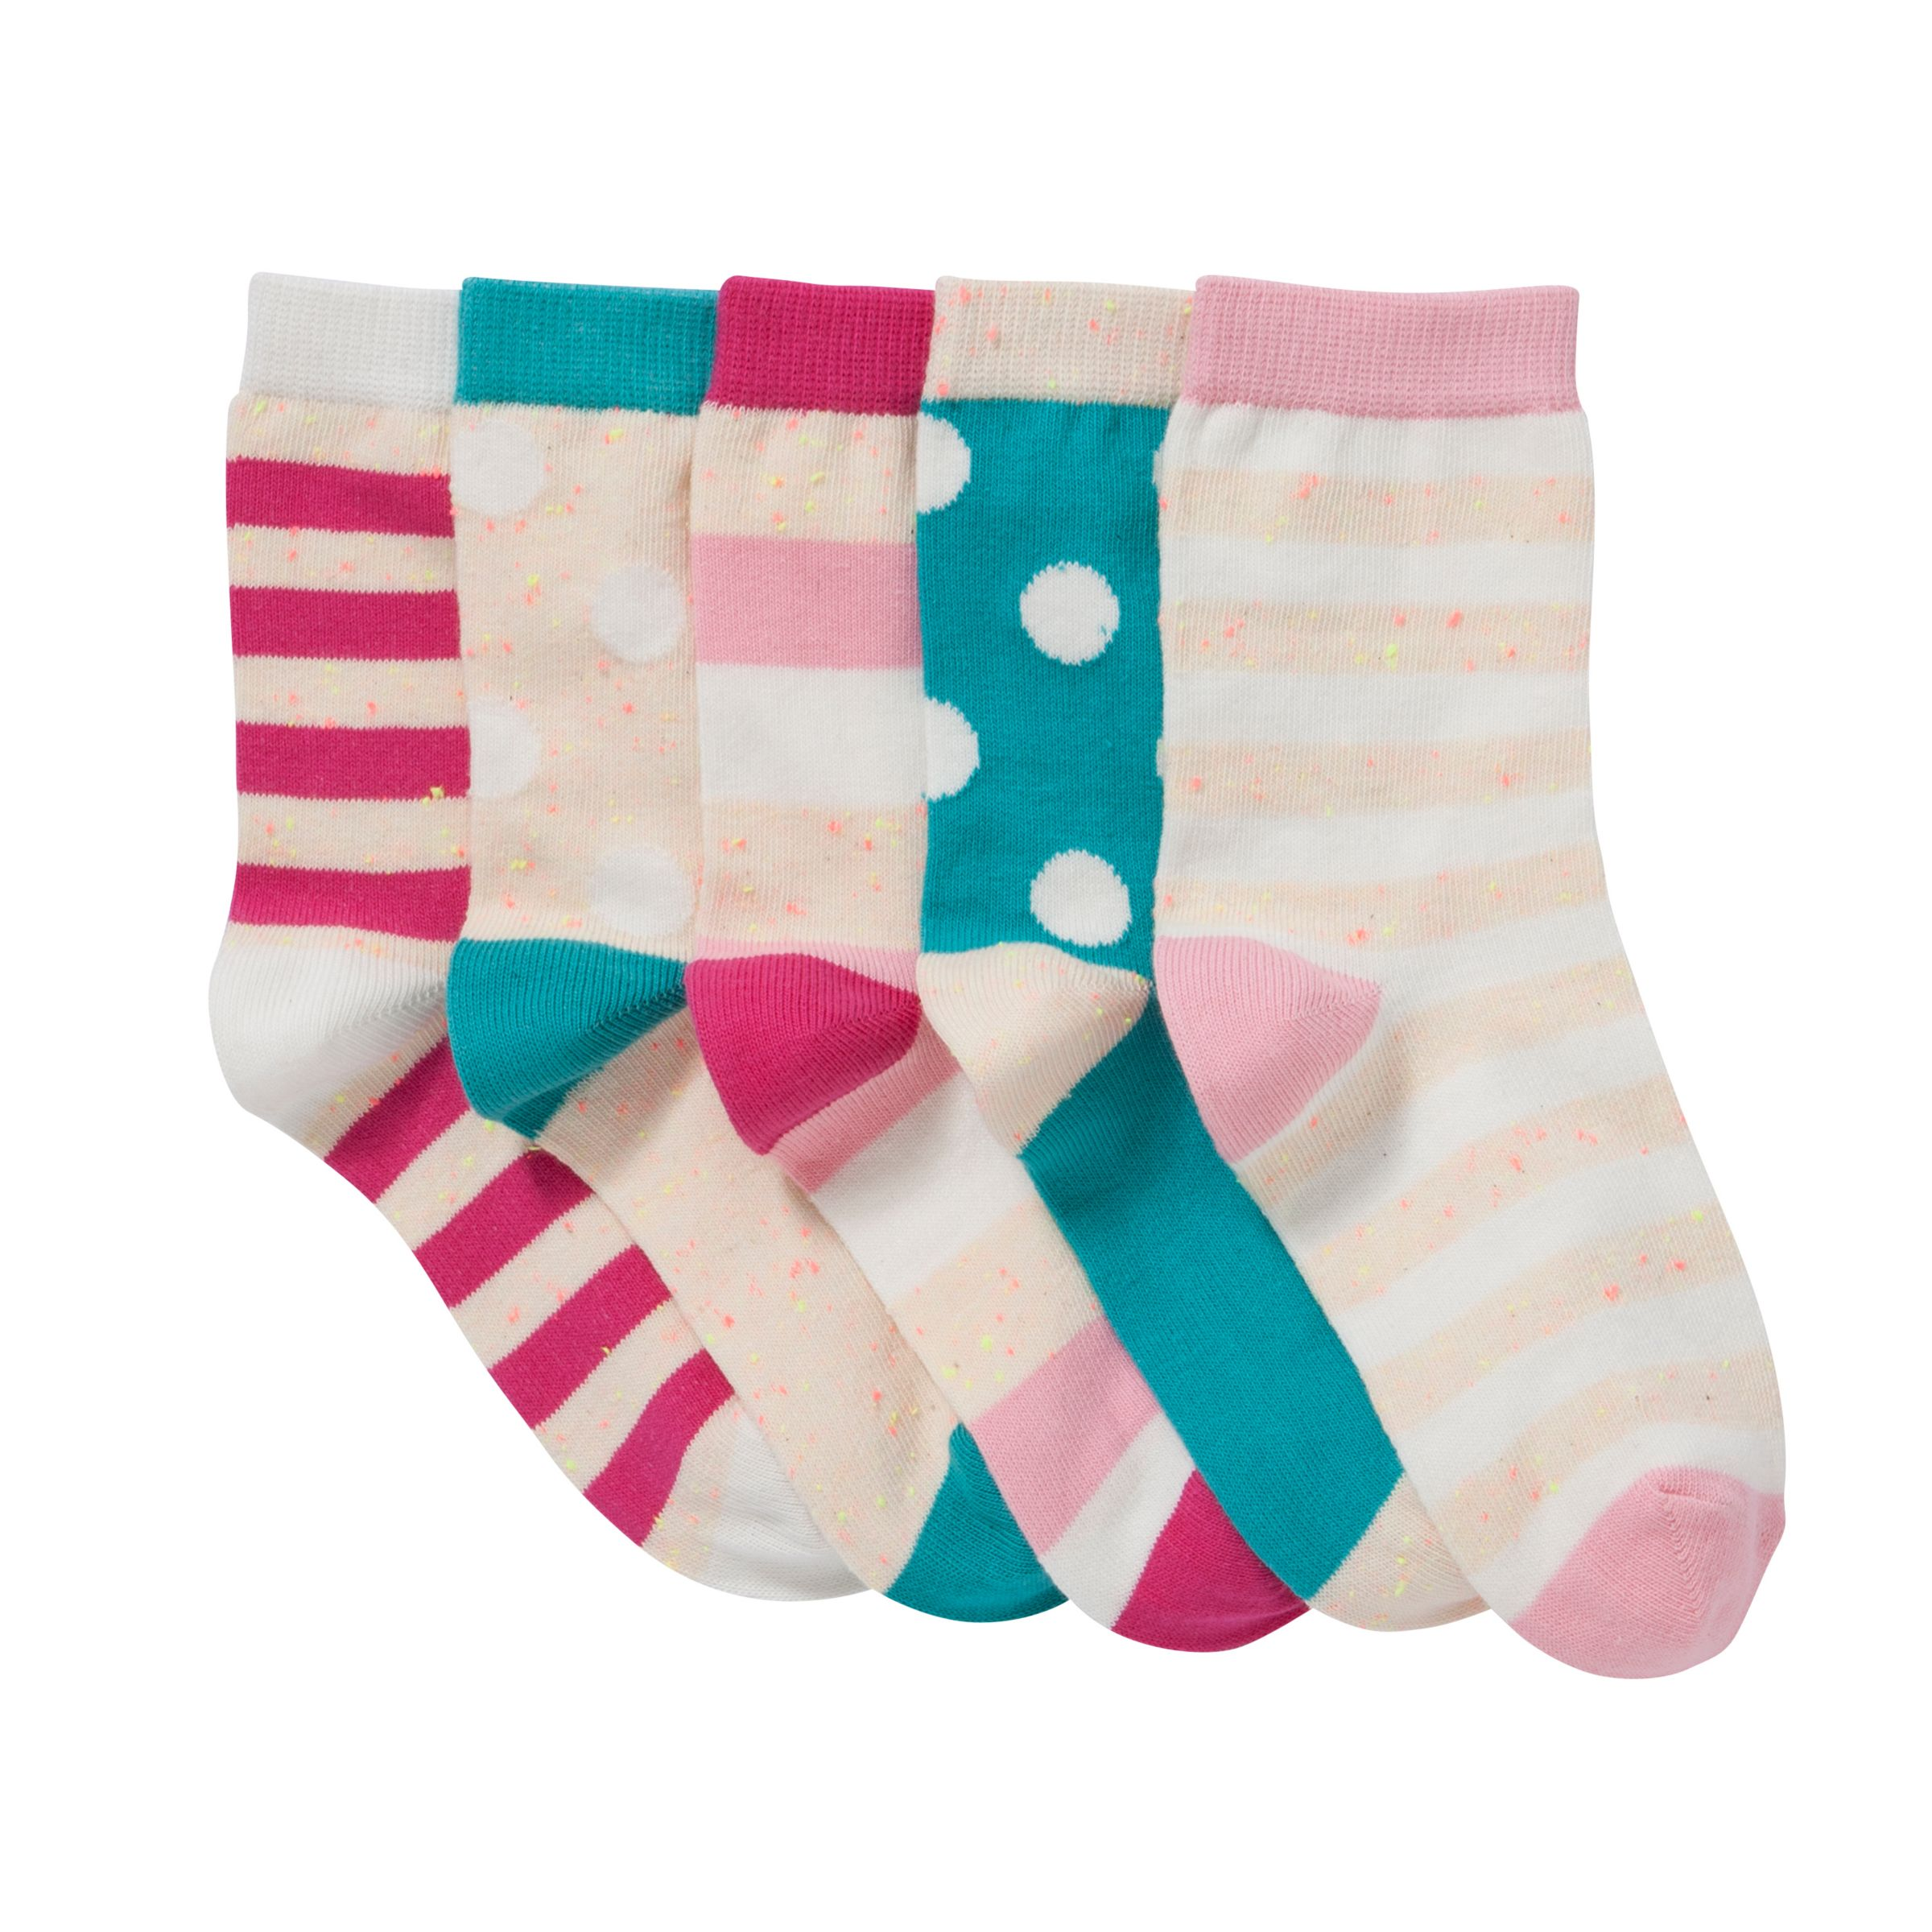 John Lewis Girl Neppy Spot and Stripe Socks, Pack of 5, Multi